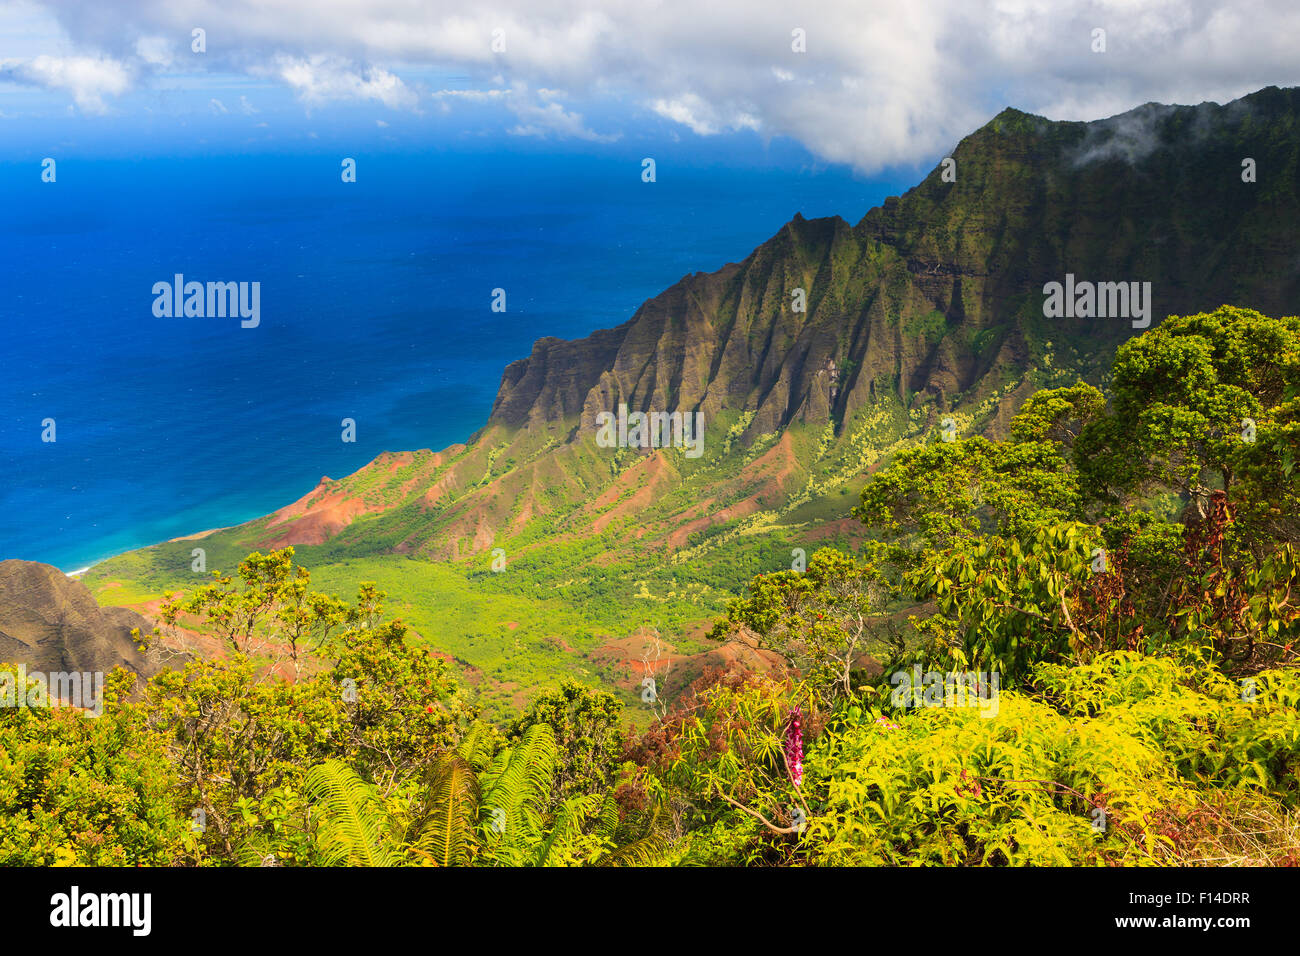 Mount Waiʻaleʻale, often spelled Waialeale in English, is a shield volcano and the second highest point on the island - Stock Image